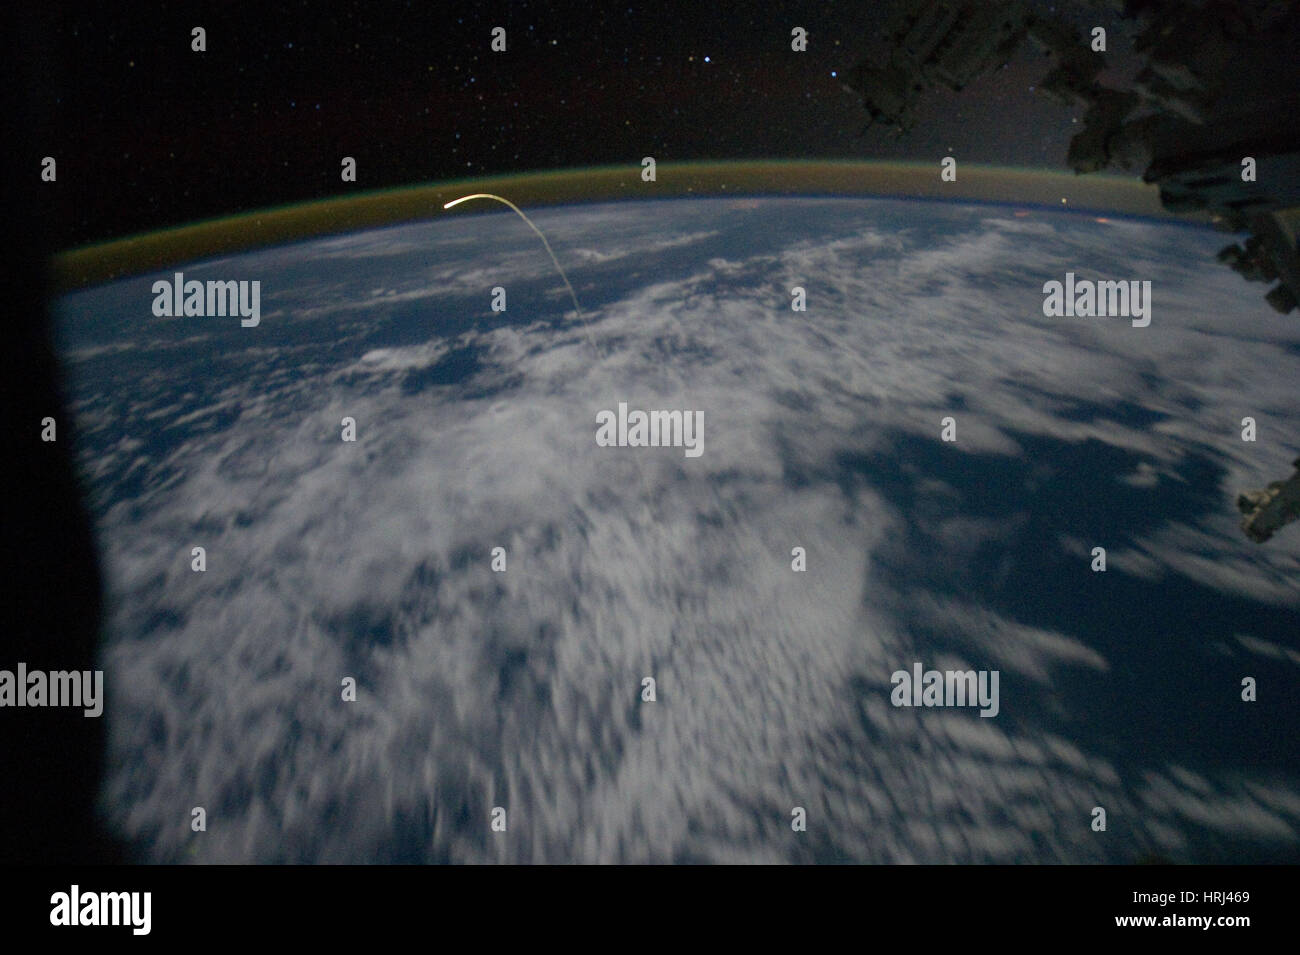 Space Shuttle Atlantis, ISS Bild, 2011 Stockbild